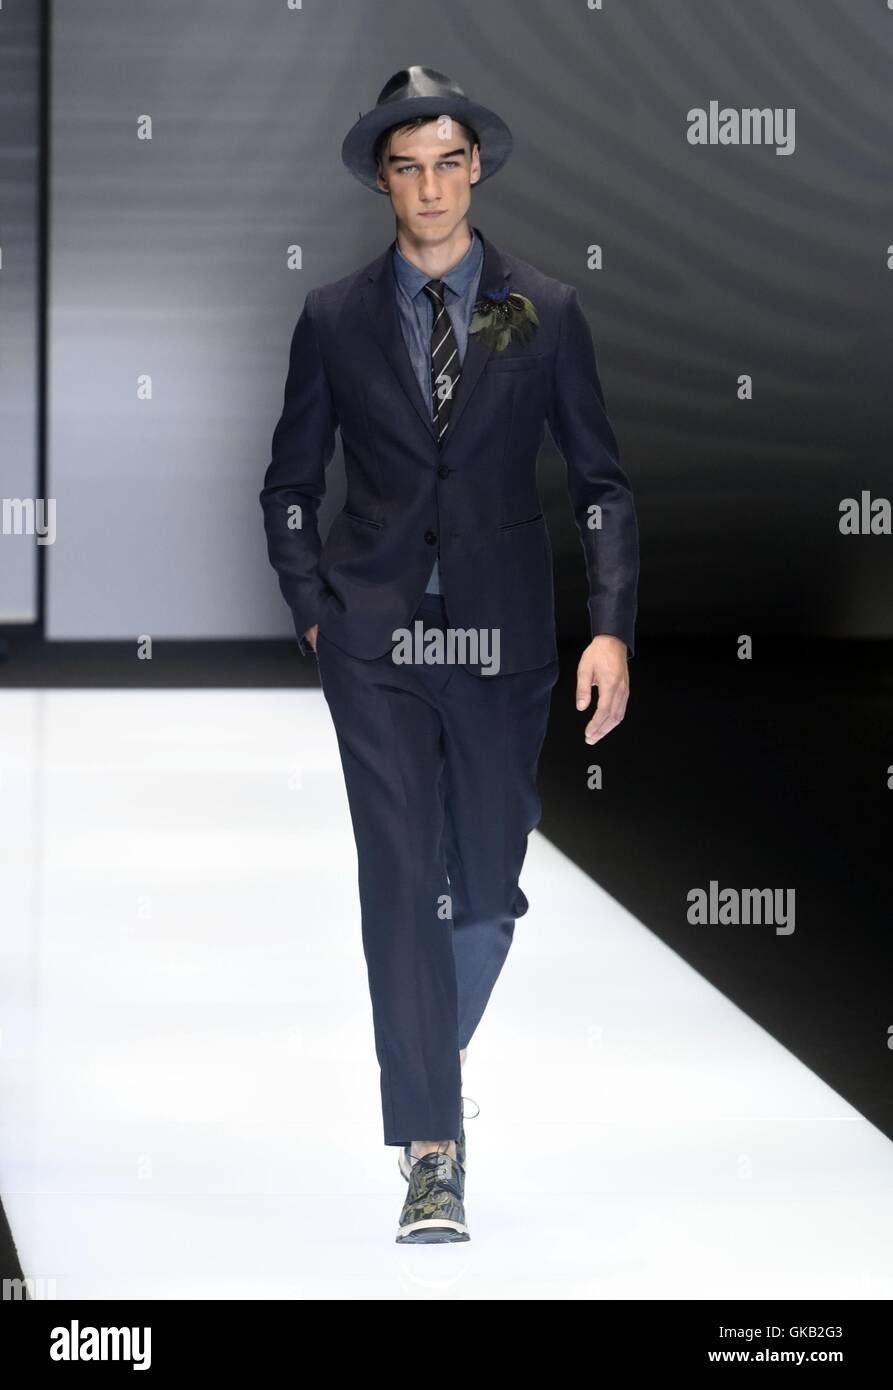 Milan Fashion Week Men s Spring Summer 2017 - Emporio Armani - Catwalk  Featuring  Model Where  Milan, Italy When  20 Jun 2016 Credit  IPA WENN.com    Only ... f7a1ff2088